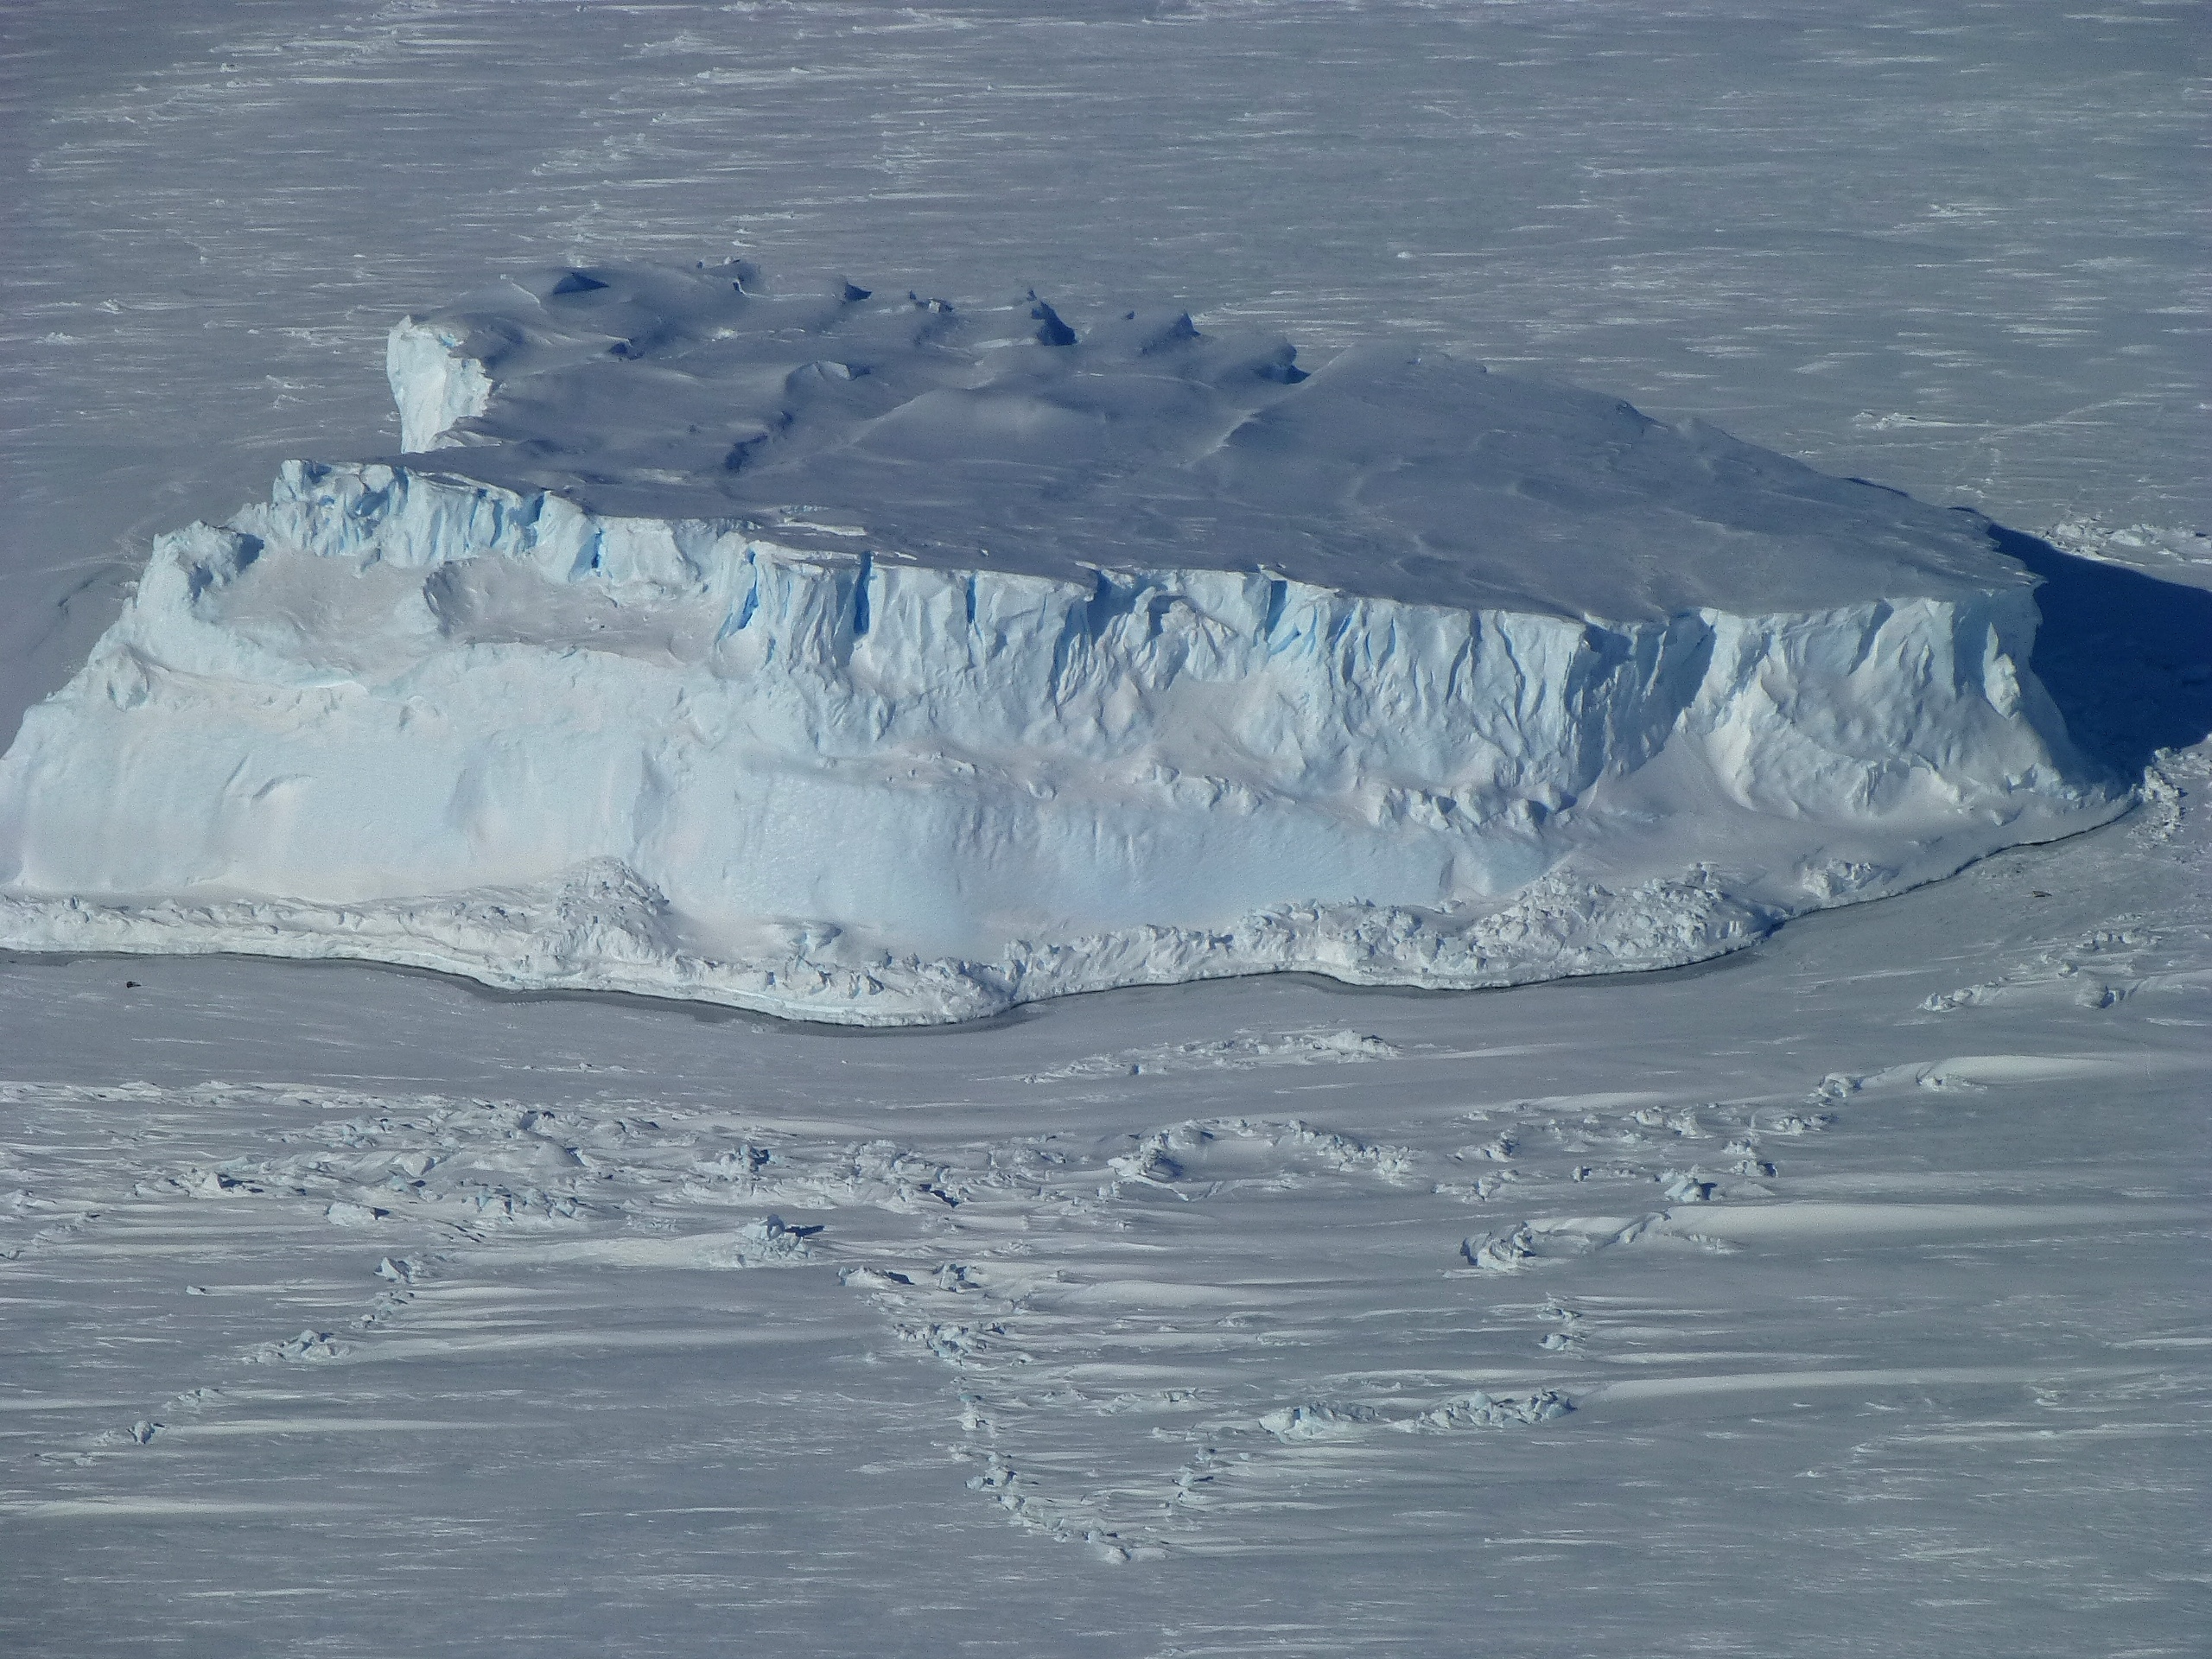 An iceberg trapped in sea ice in the Amundsen Sea, seen from the IceBridge DC-8 during the Getz 07 mission on Oct. 27. Credit: NASA / Maria-Jose Vinas